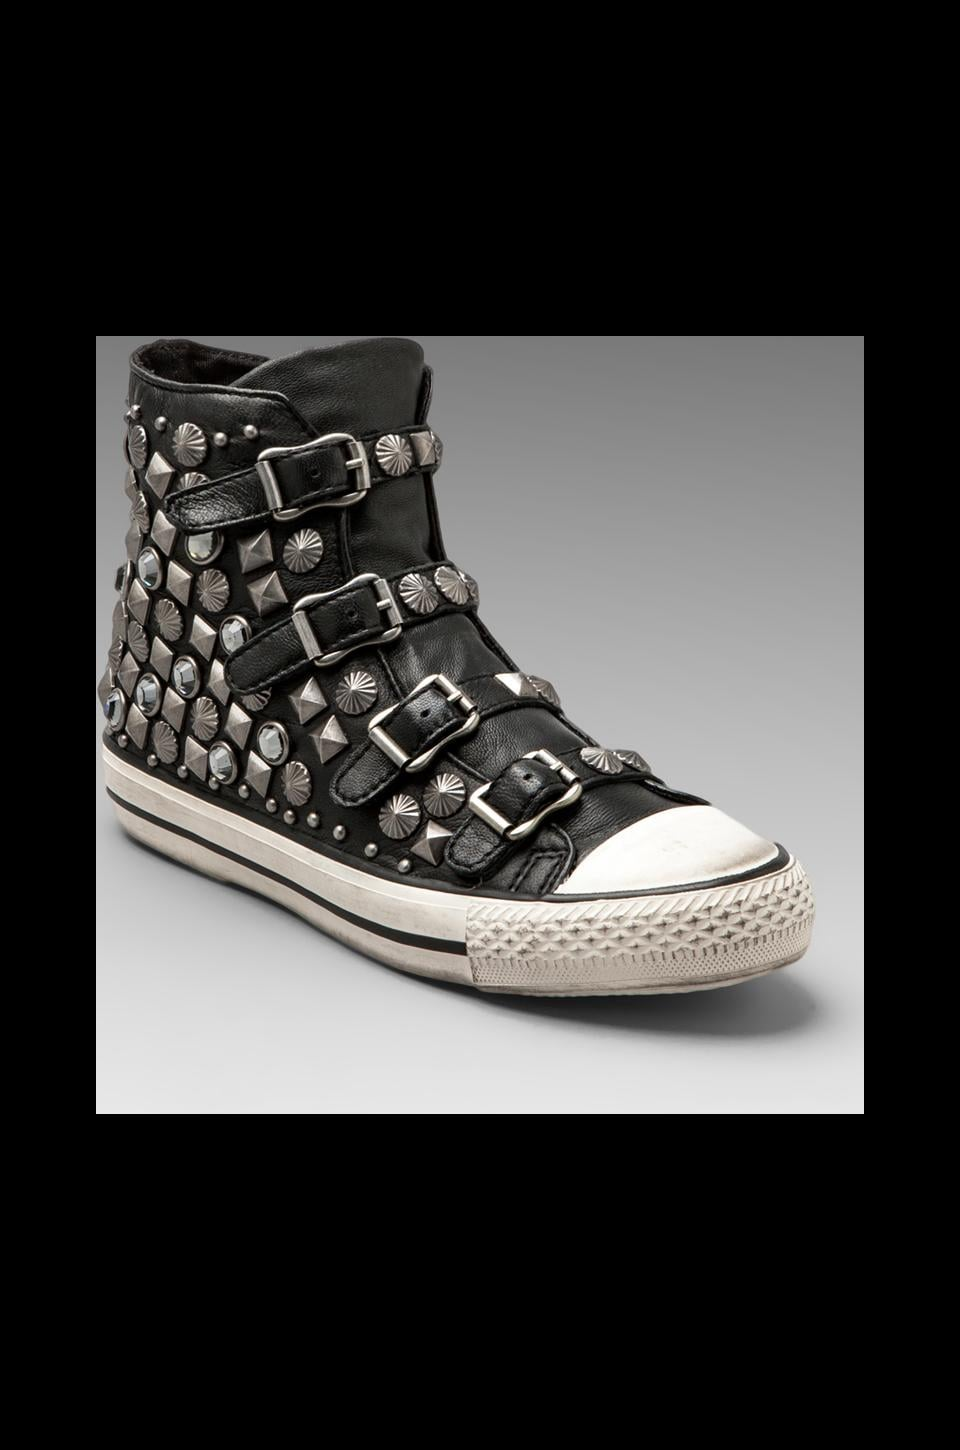 Ash Victim Sneaker in Black/Silver Tarnish Studs